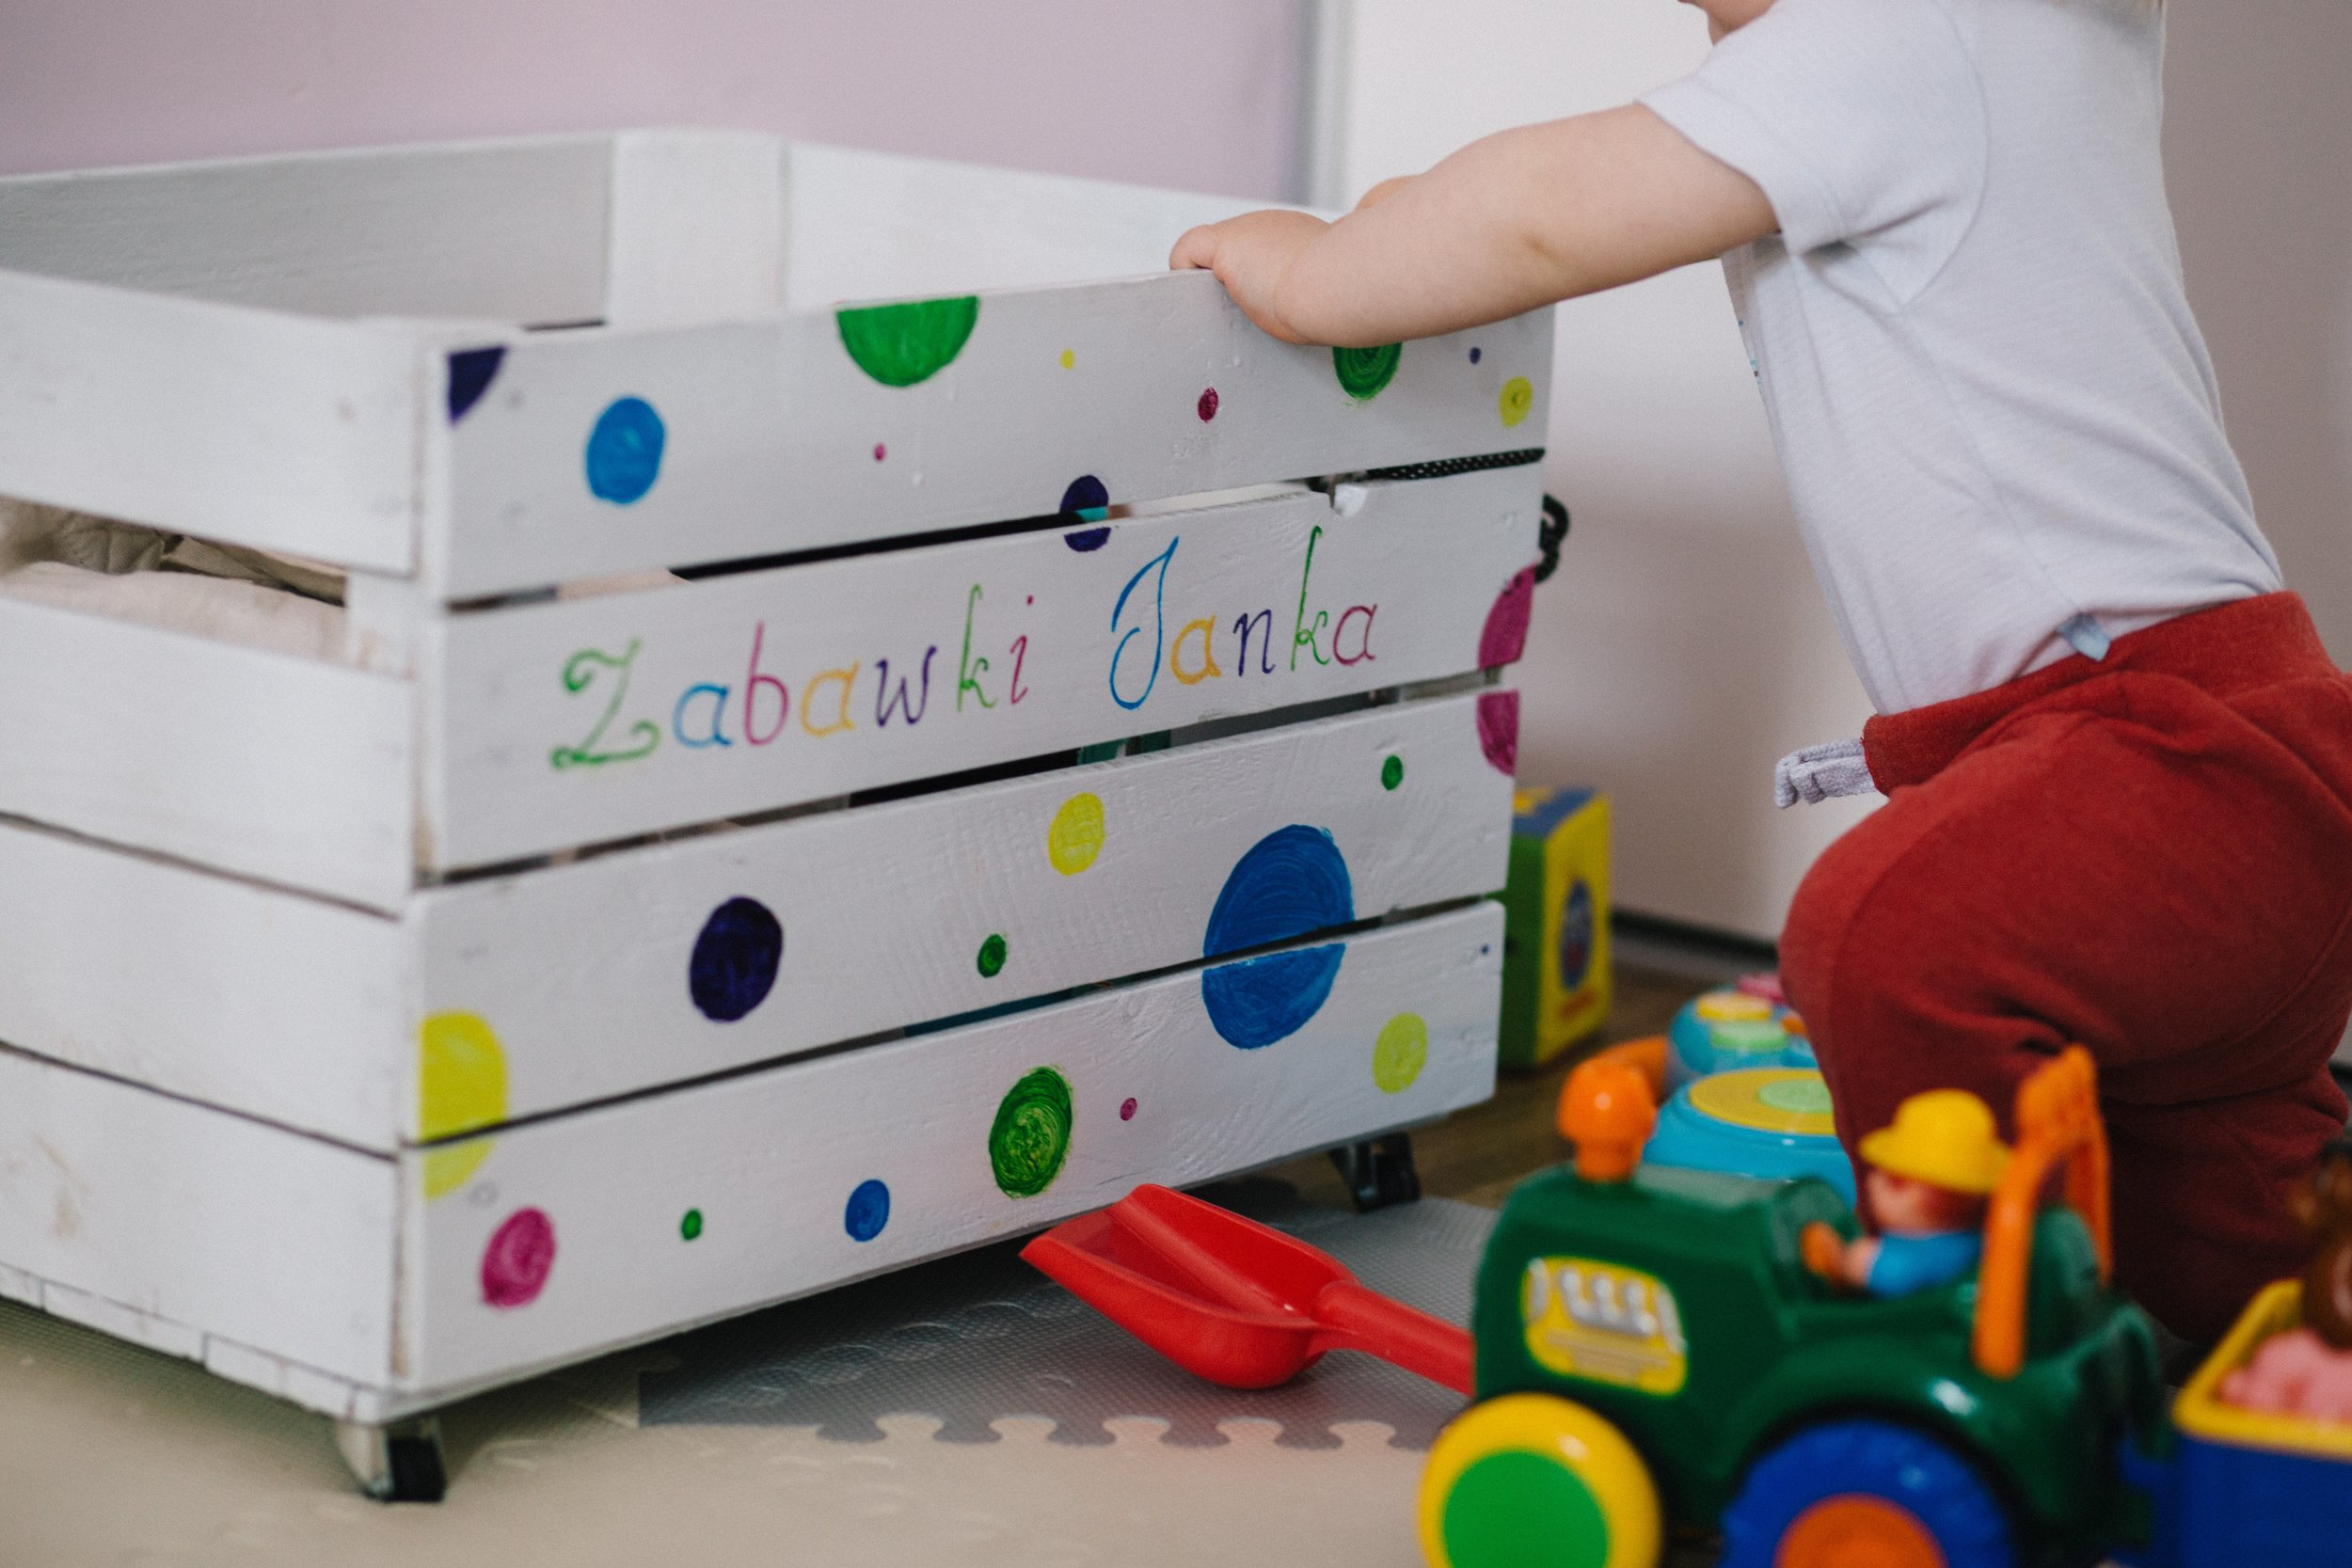 baby-child-container-437746.jpg